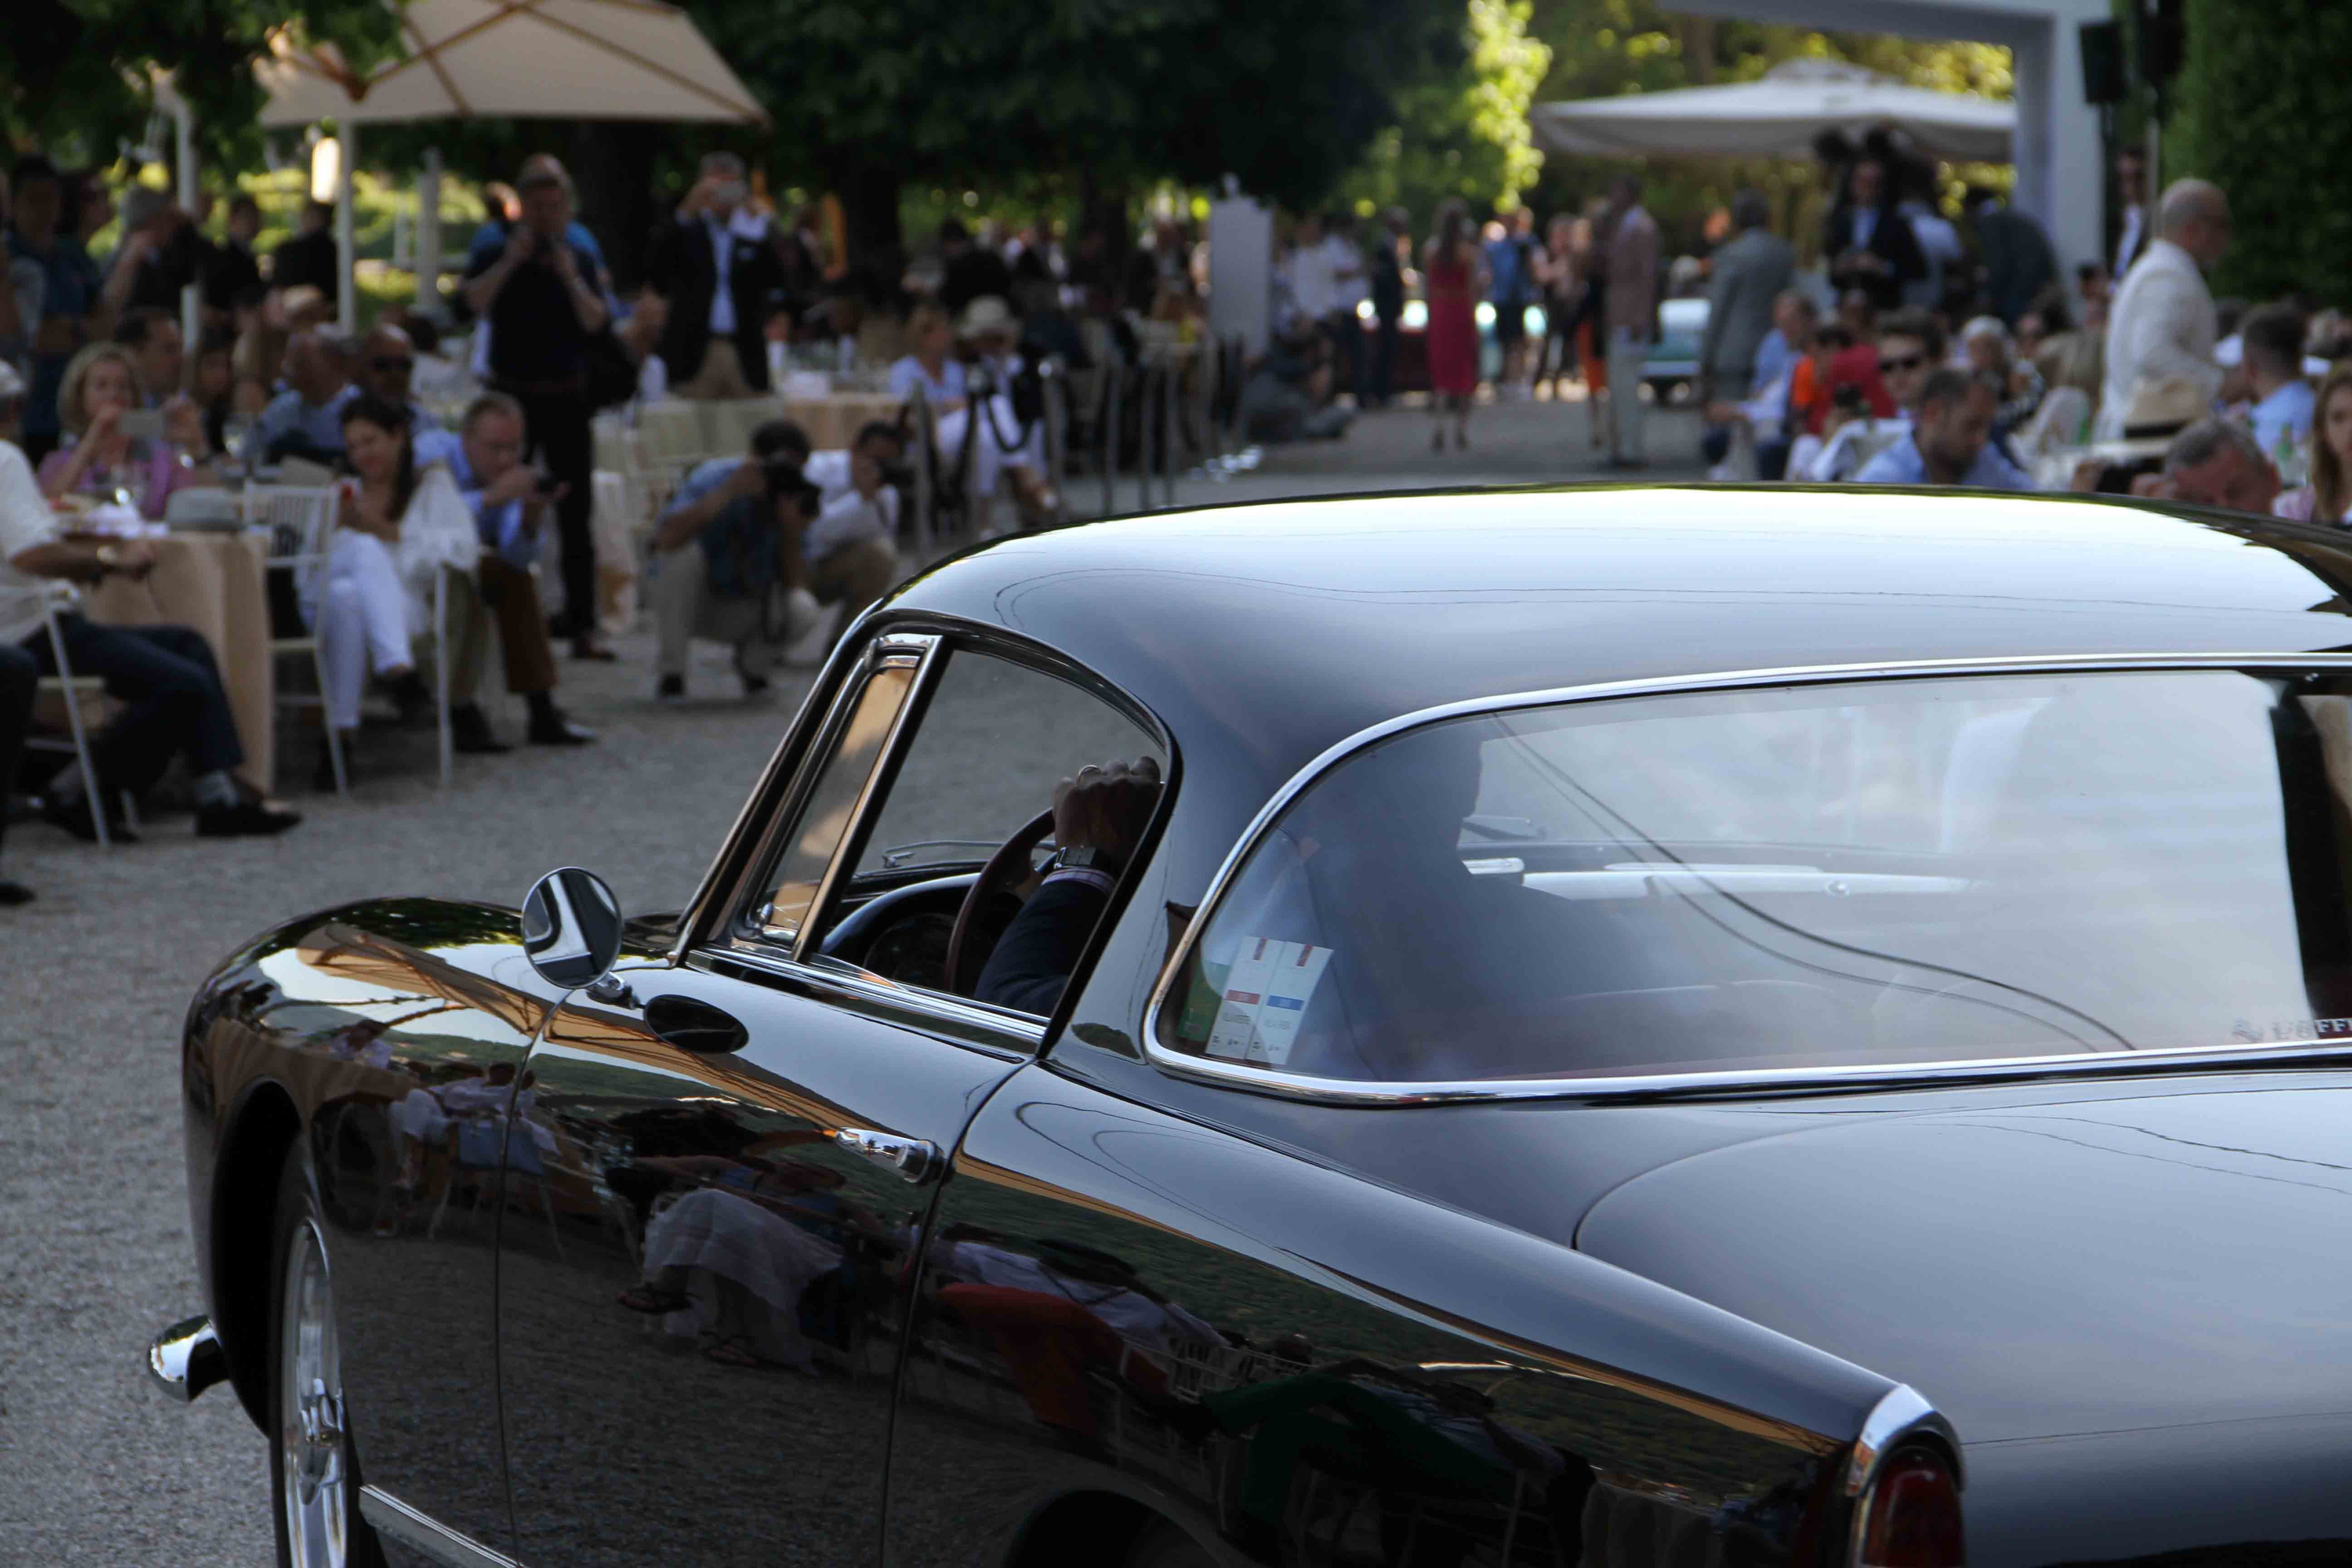 Photo Report: Watch And Car Spotting At The 2016 Concorso d'Eleganza Villa d'Este With A. Lange & Söhne Photo Report: Watch And Car Spotting At The 2016 Concorso d'Eleganza Villa d'Este With A. Lange & Söhne IMG 5603